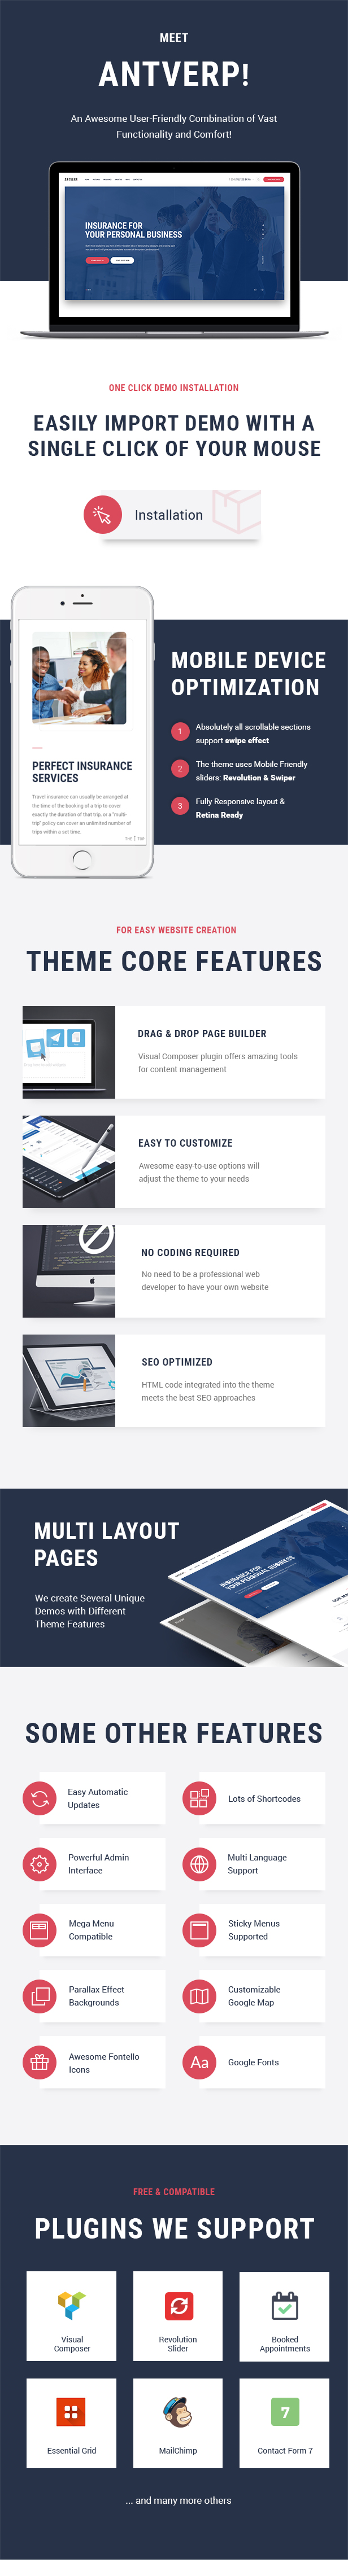 Antverp | An Insurance & Financial Advising WordPress Theme - 3